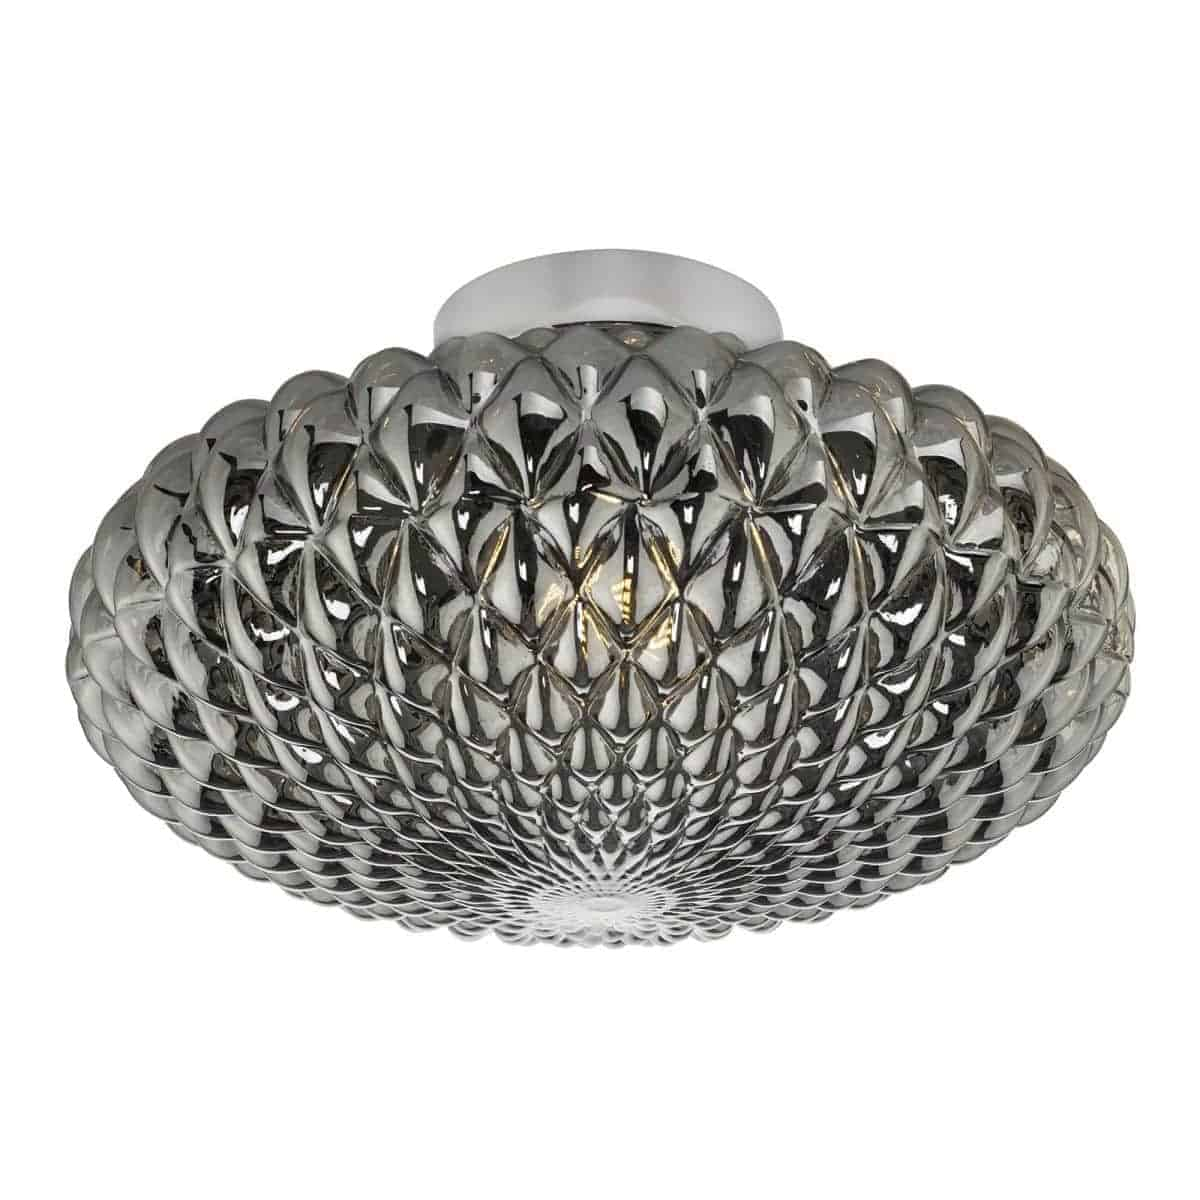 Dar BIB3010 Bibiana 1 Light Wall Light Polished Chrome with Smoke Shade Large